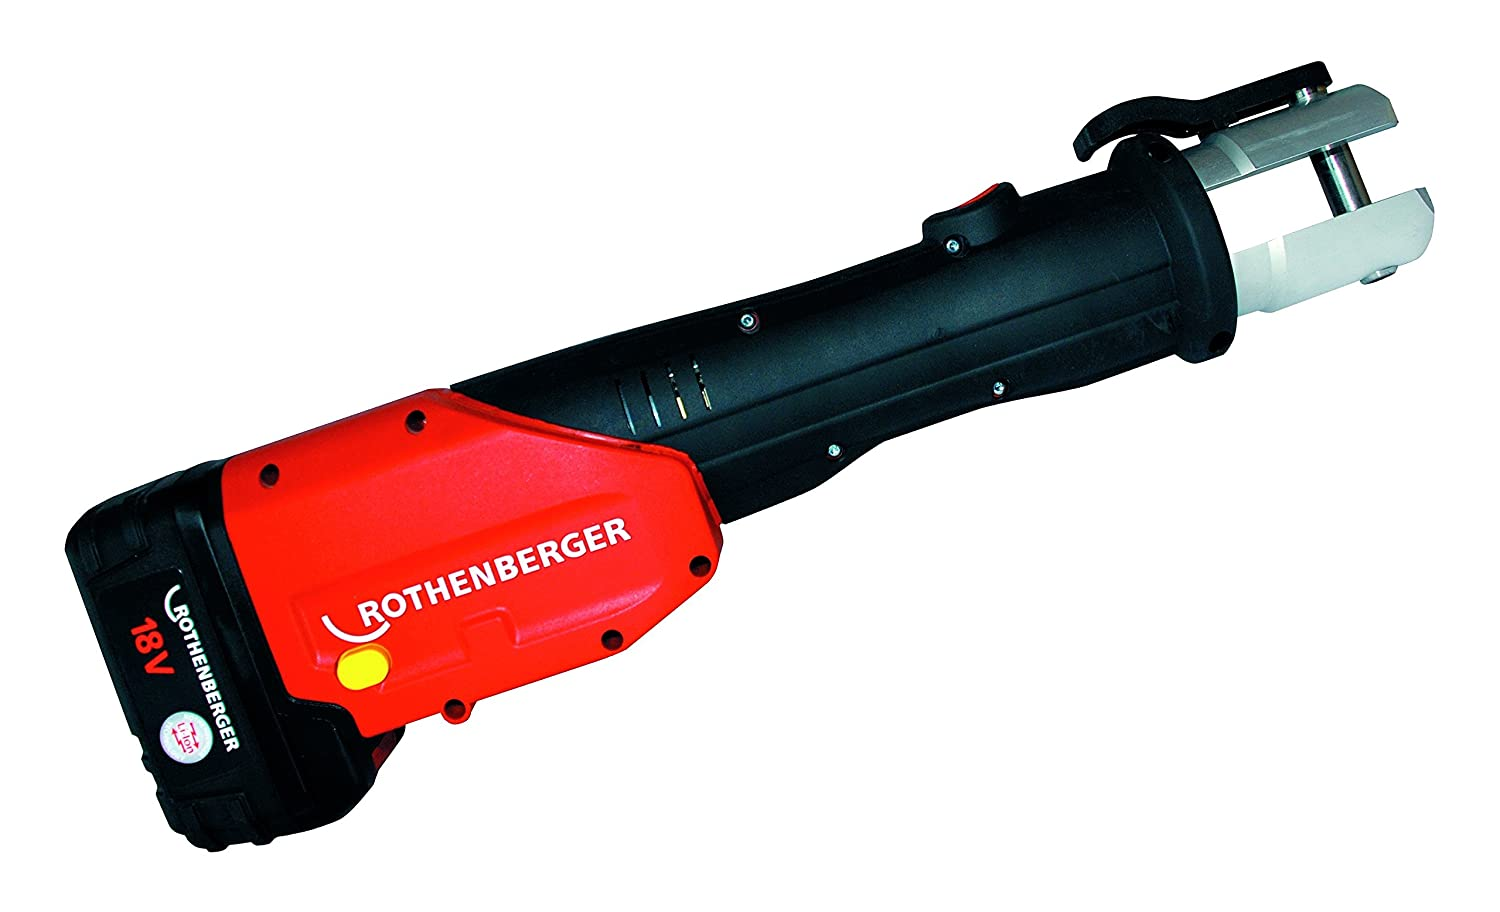 Rothenberger 15020 Romax compact basic